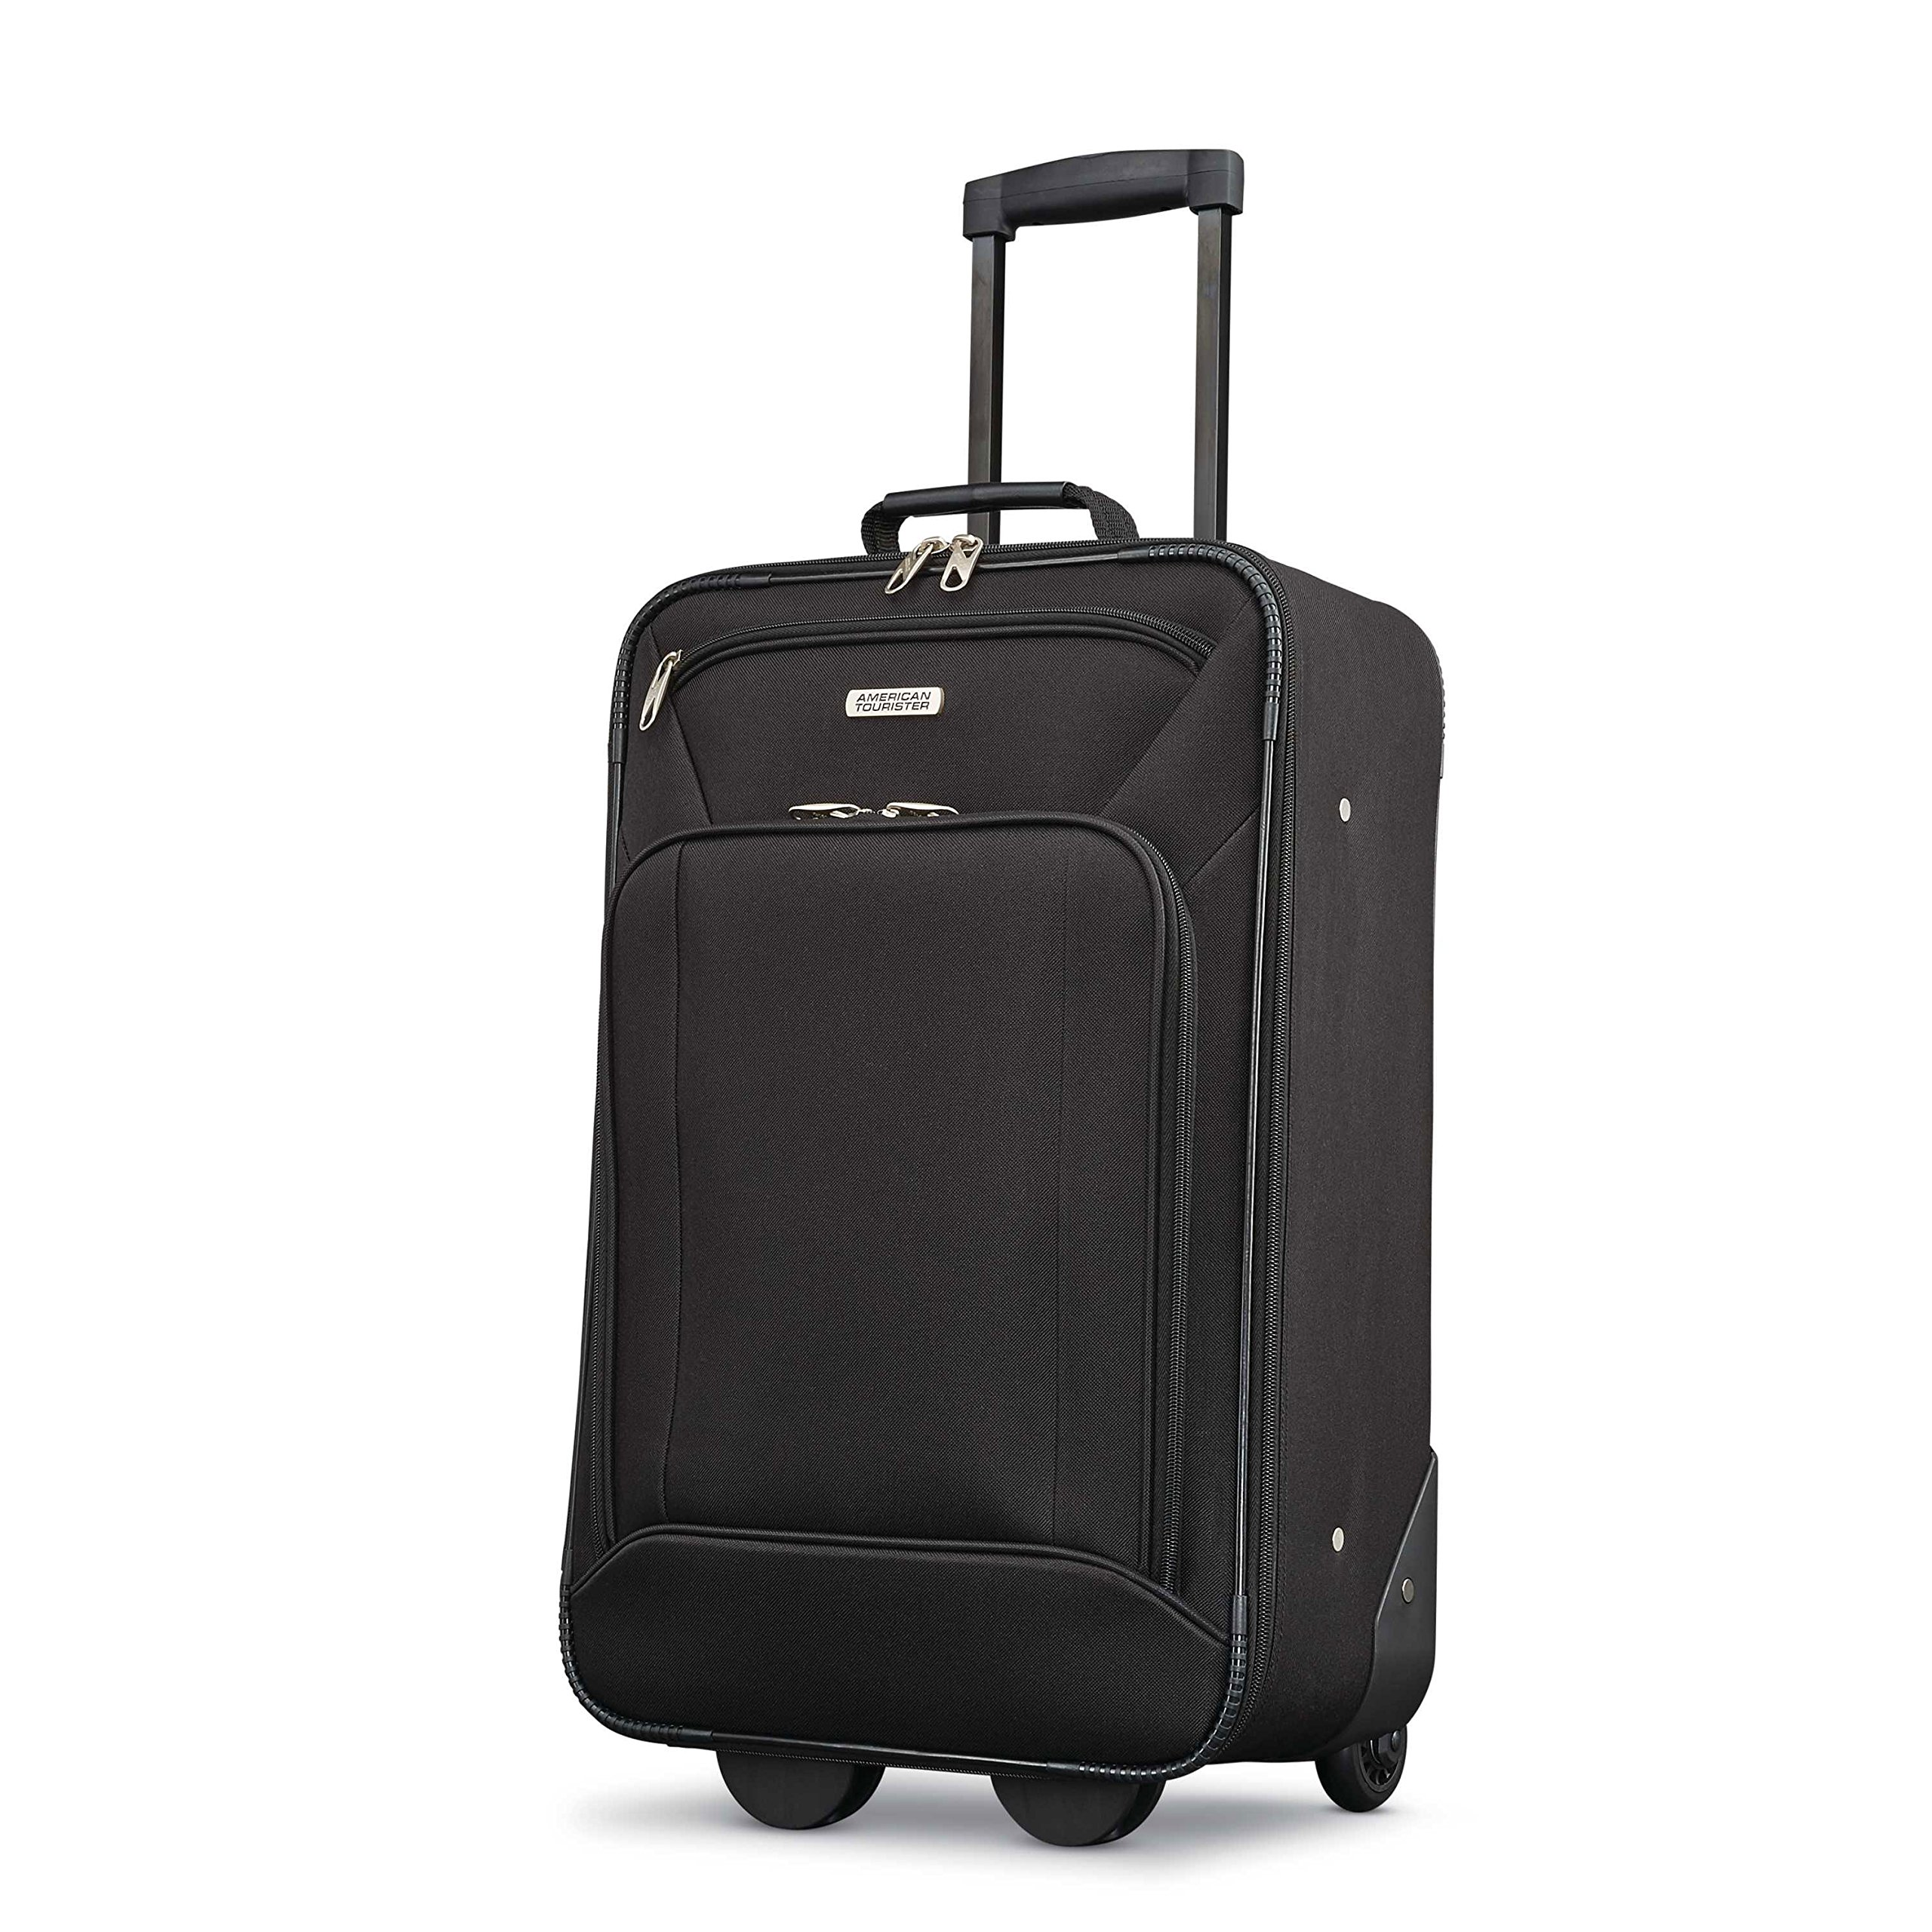 American Tourister Fieldbrook Xlt 4pc Set (Bb/Wh Dfl/ 21/25 Upright), Black by American Tourister (Image #5)